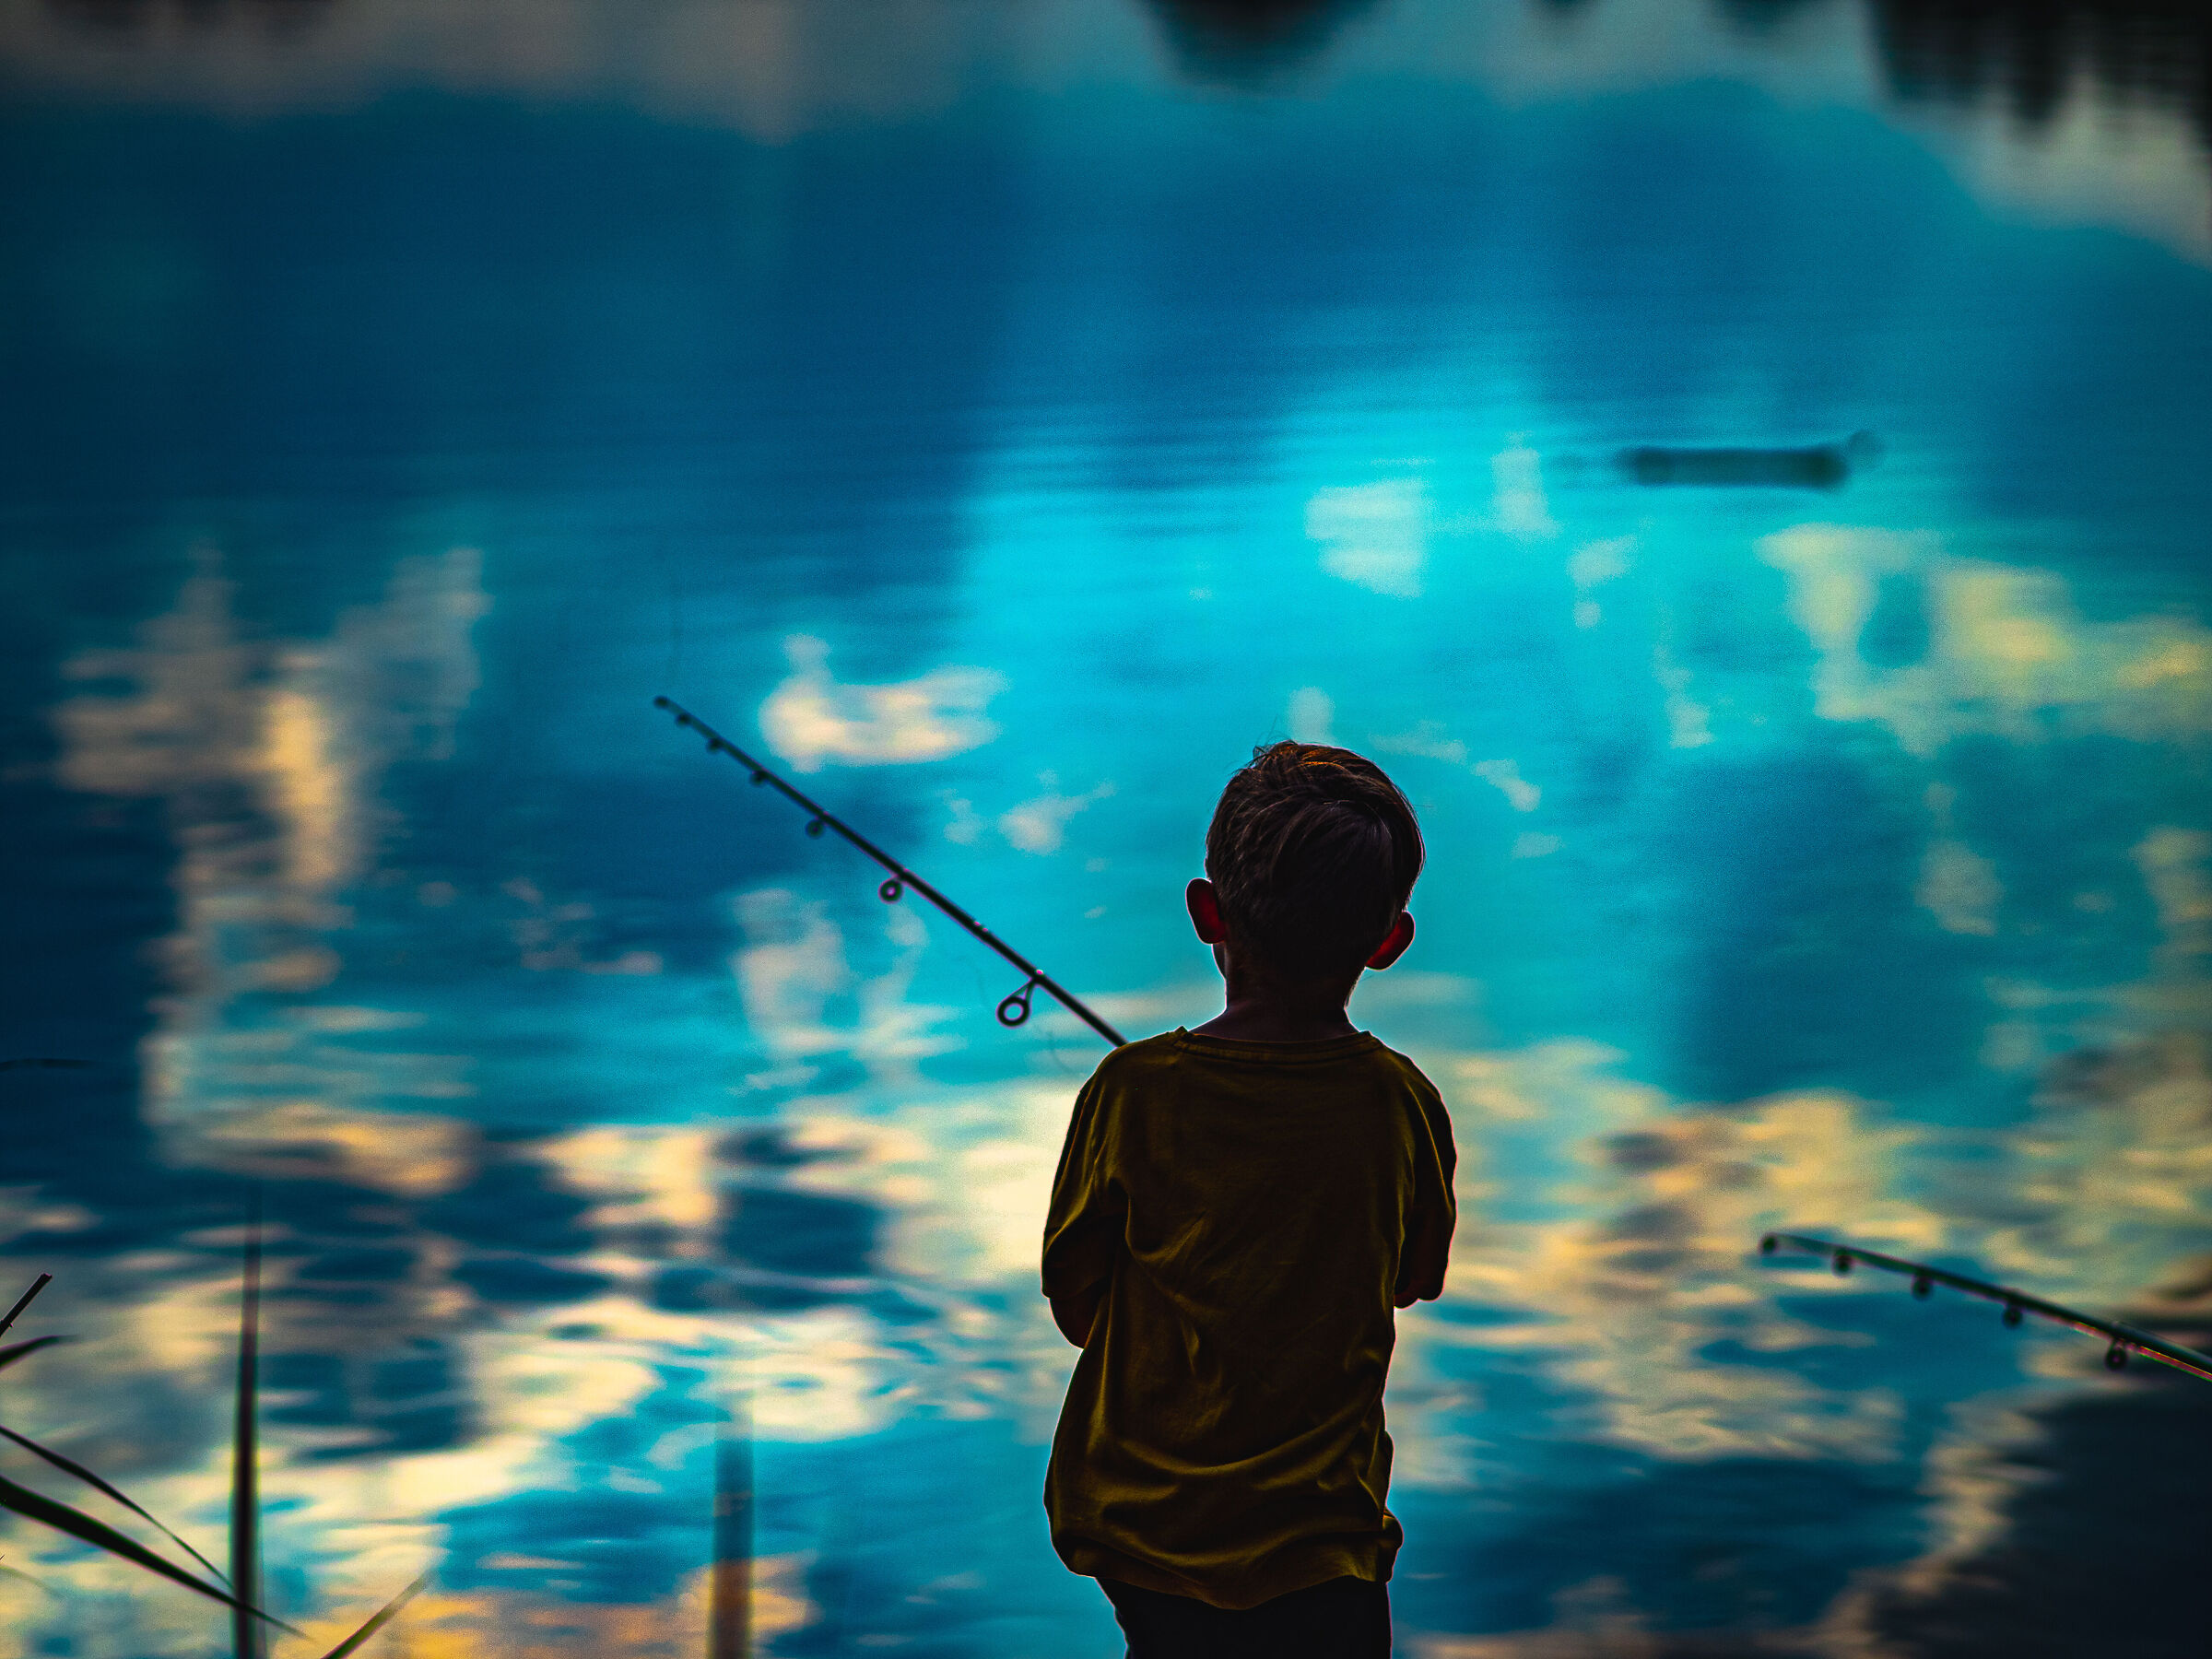 A real passion - Fishing in the clouds...